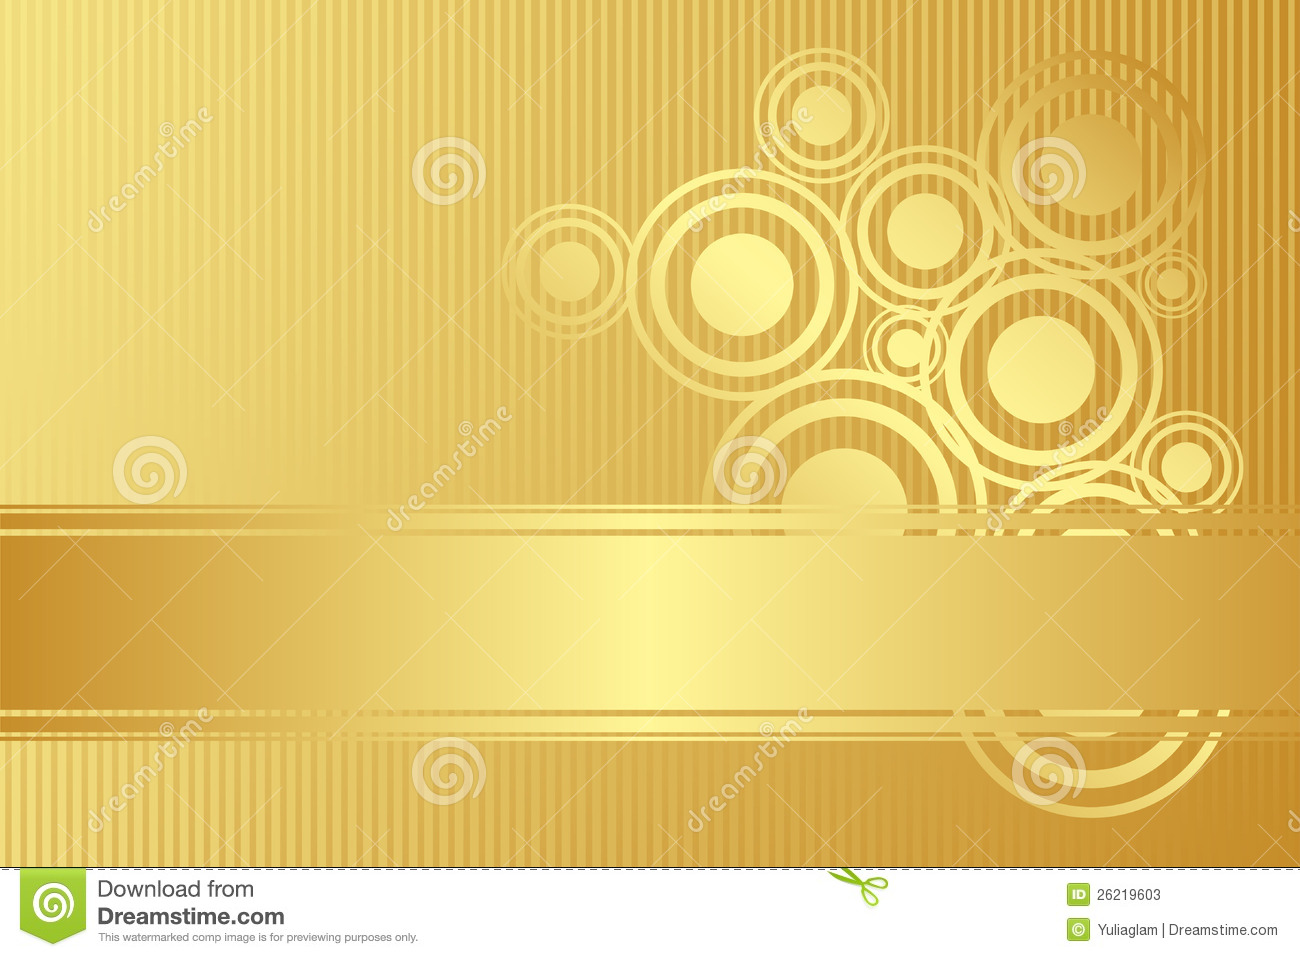 vector gold background stock vector illustration of abstract 26219603